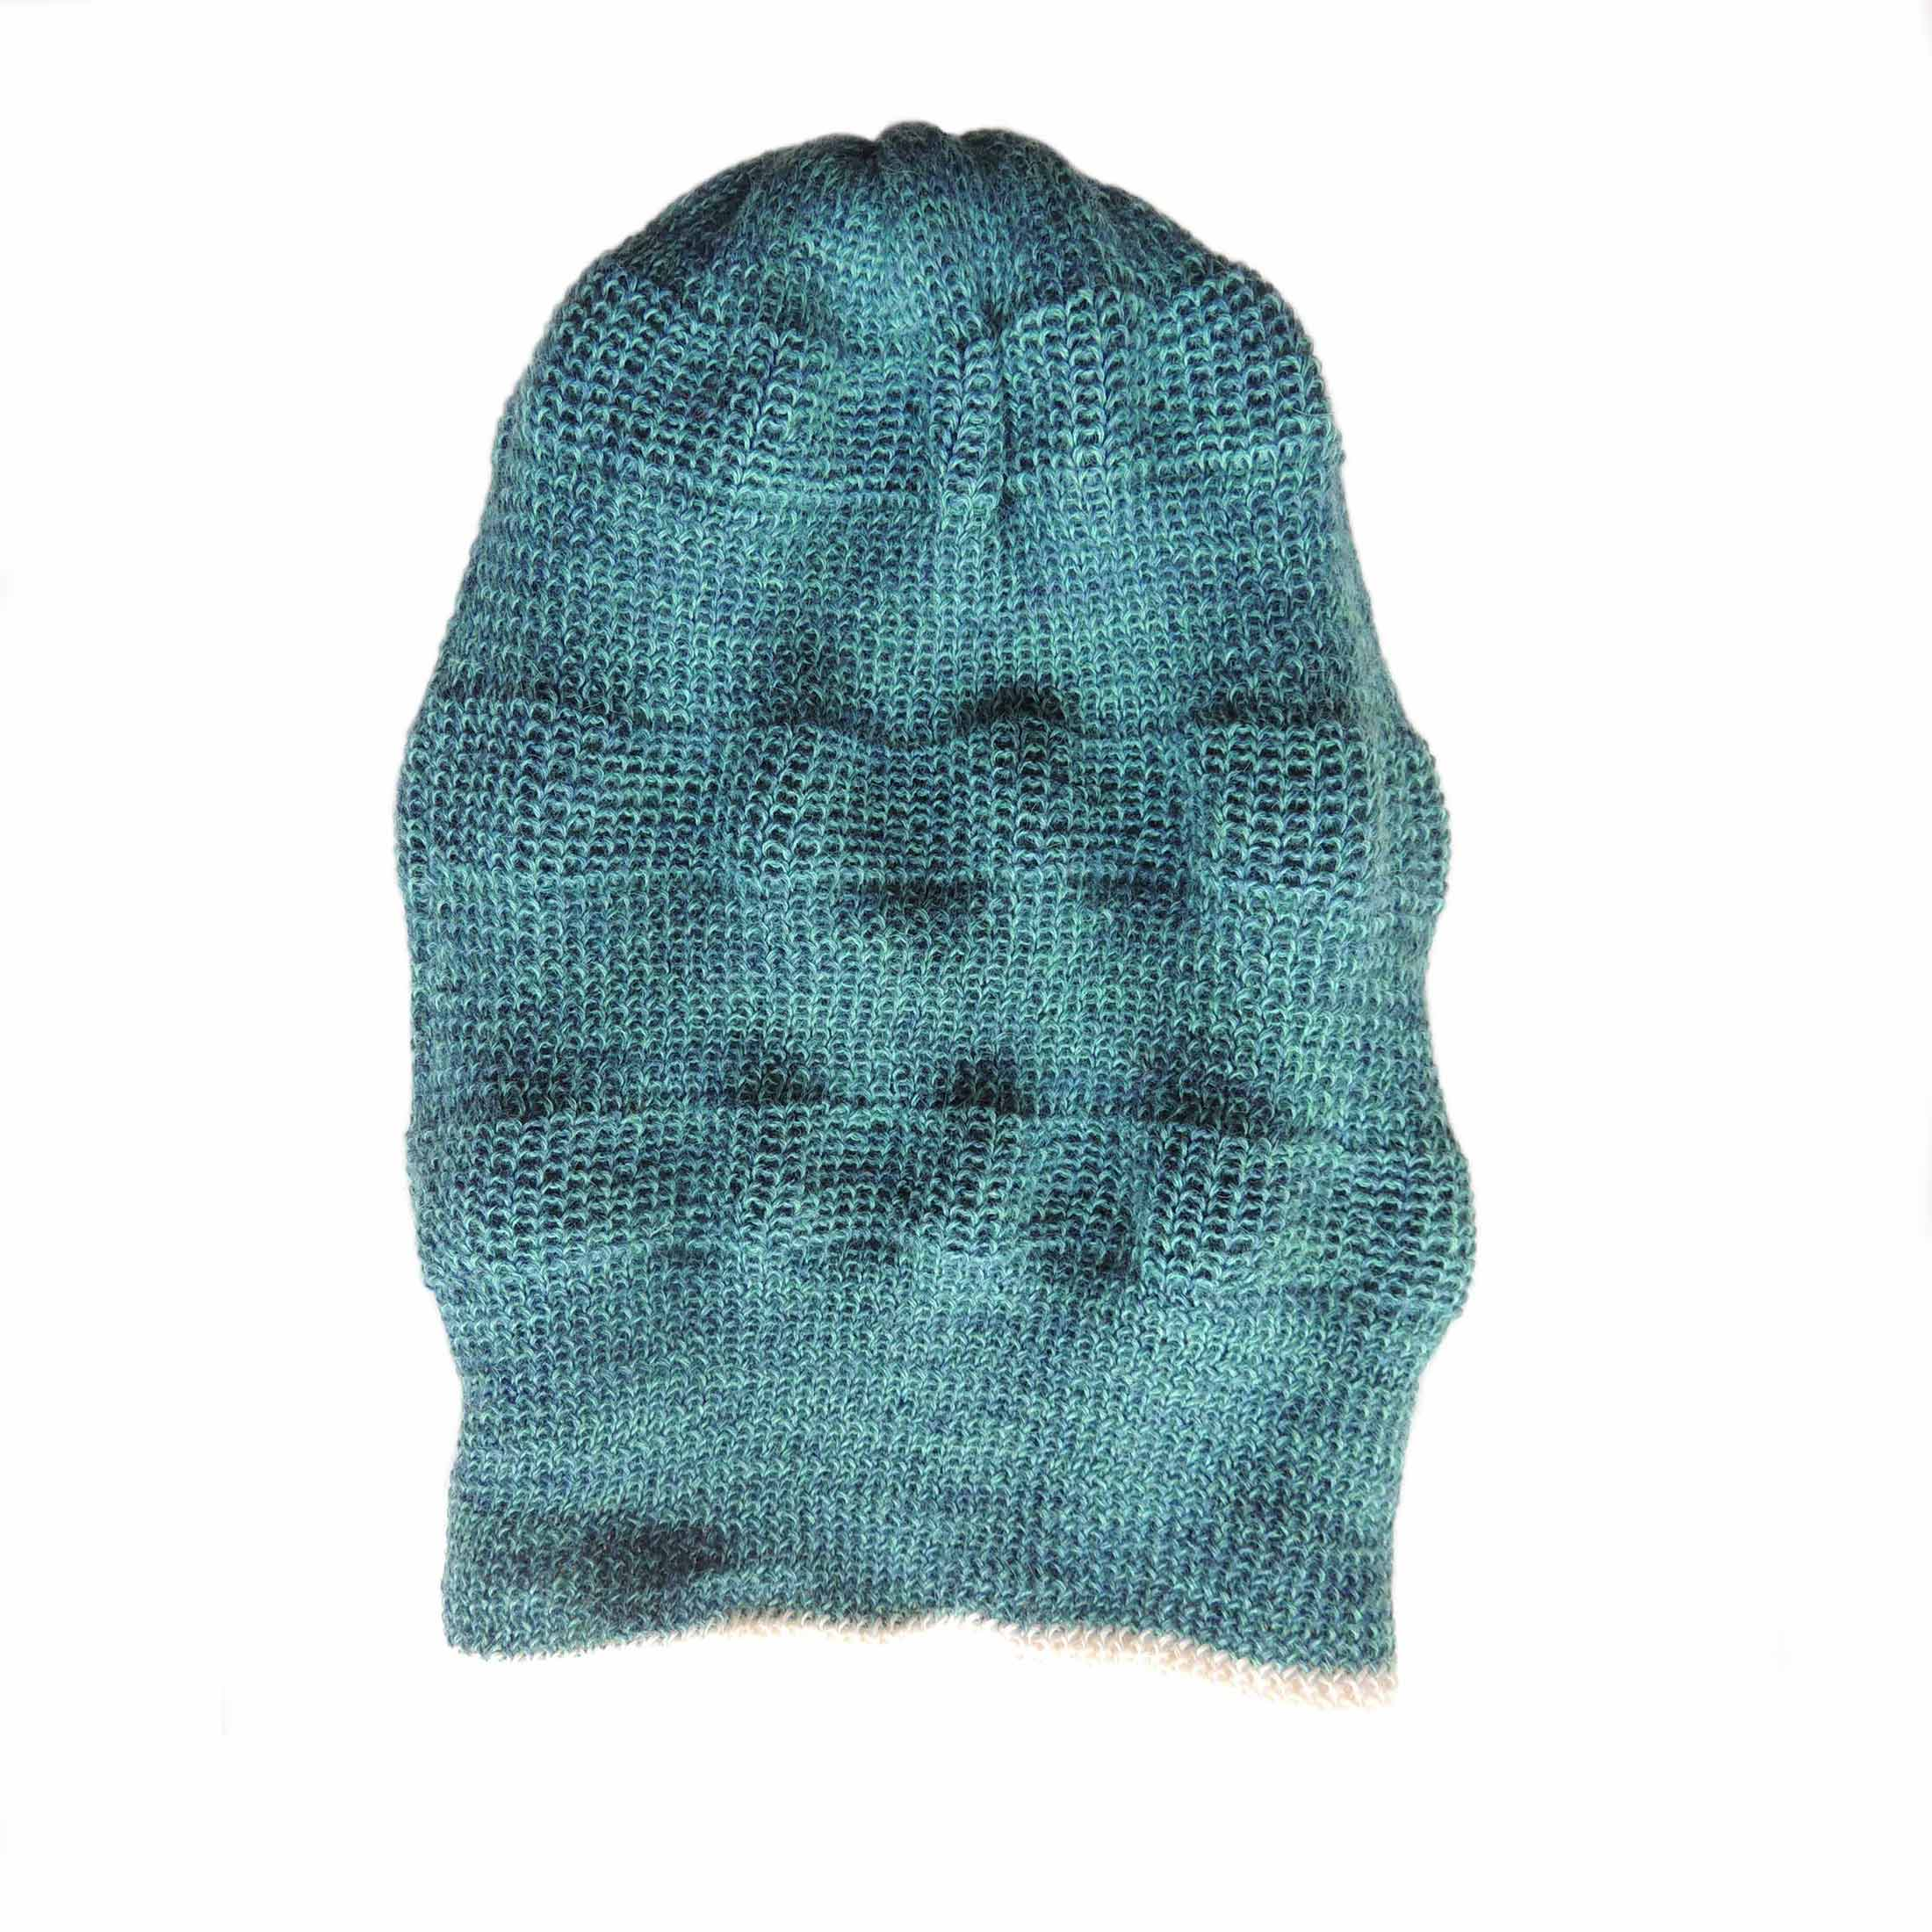 PopsFL knitwear Peru wholesale producer PFL knitwear beanie reversible two colors with relief pattern.